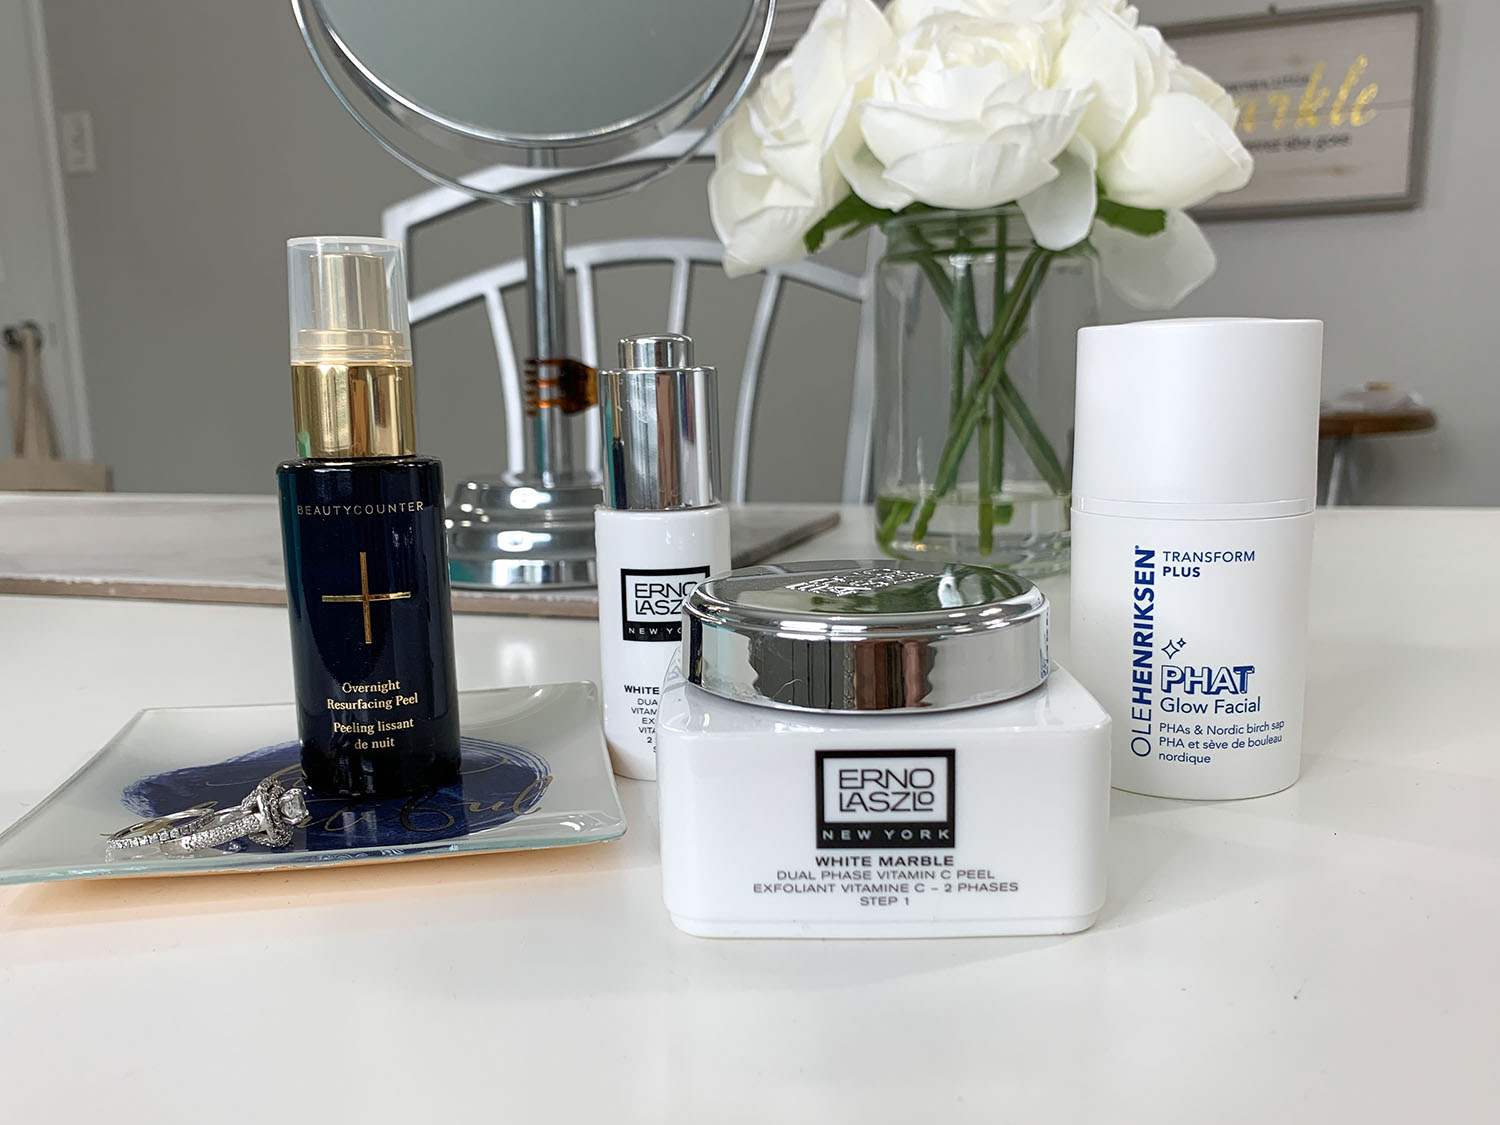 Currently Testing... Skin Care For Dull, Tired Skin   Beautycounter Overnight Resurfacing Peel, Ole Henriksen PHAT Facial, Erno Laszlo White Marble Dual Phase